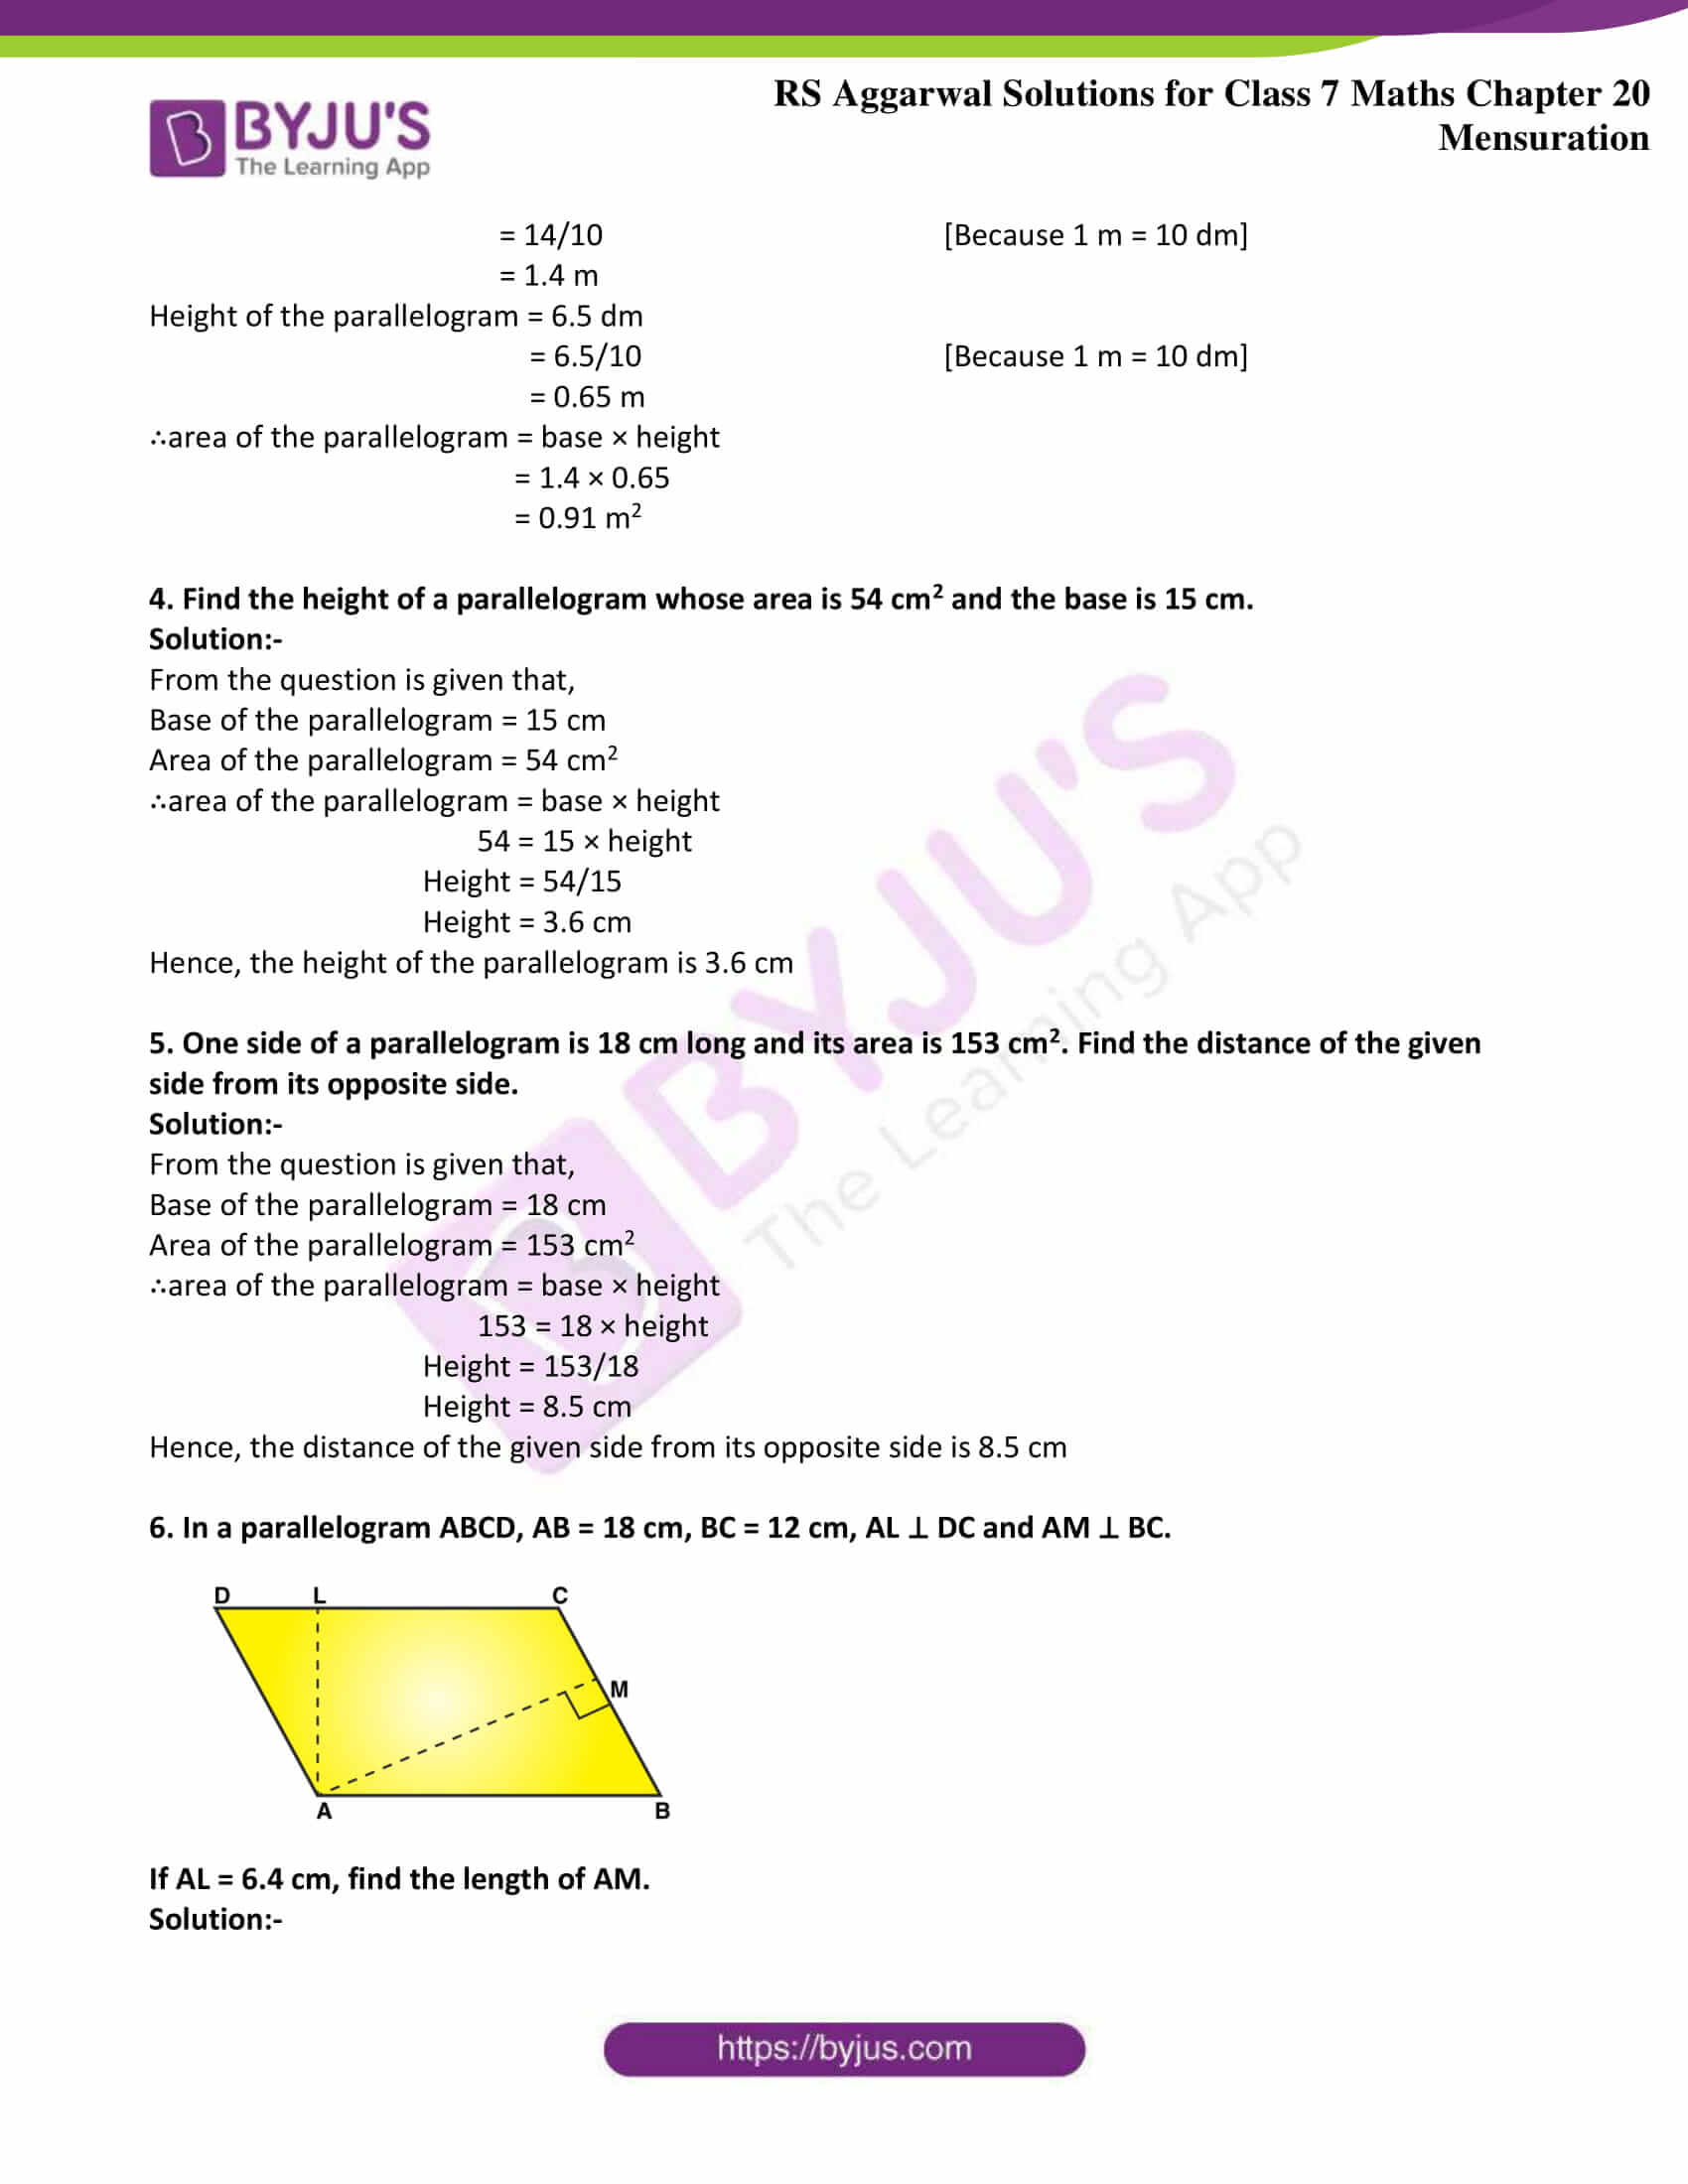 rs aggarwal solution class 7 maths chapter Exercise 20C